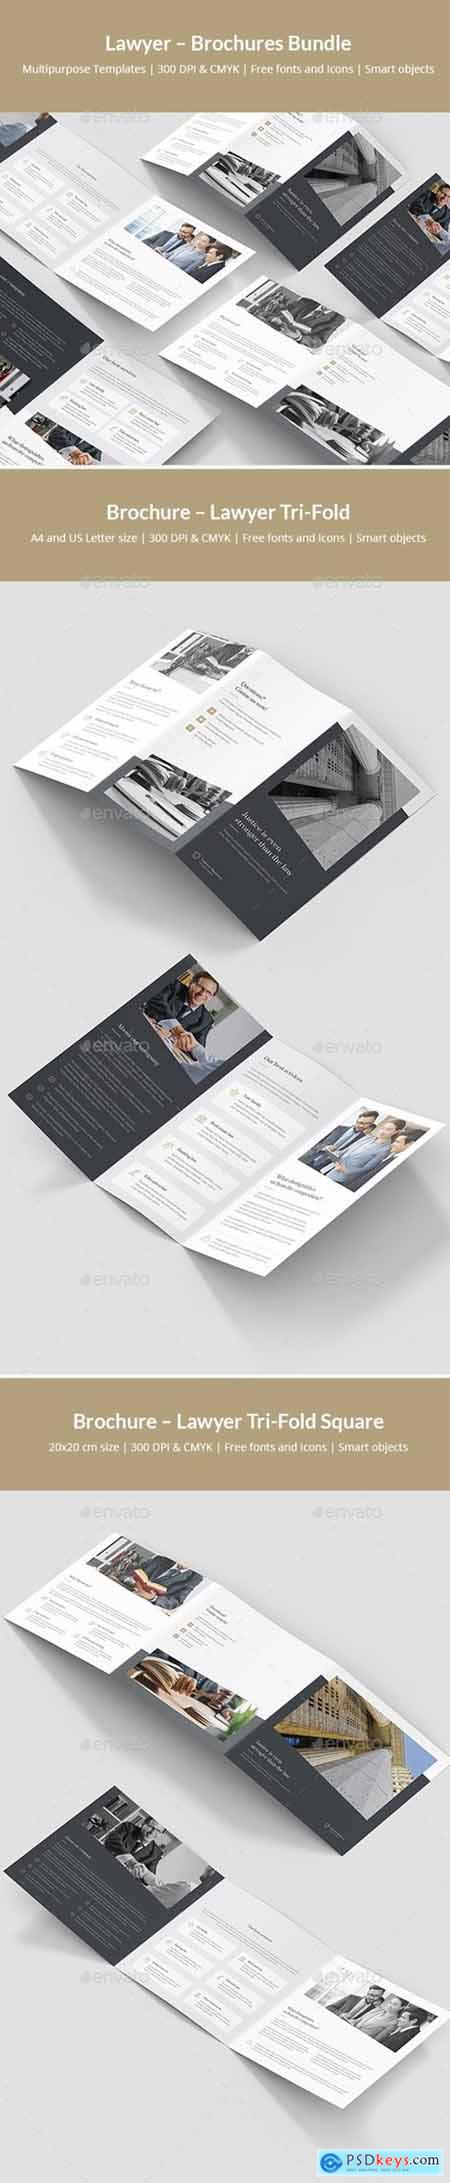 Lawyer – Brochures Bundle Print Templates 5 in 1 24245507